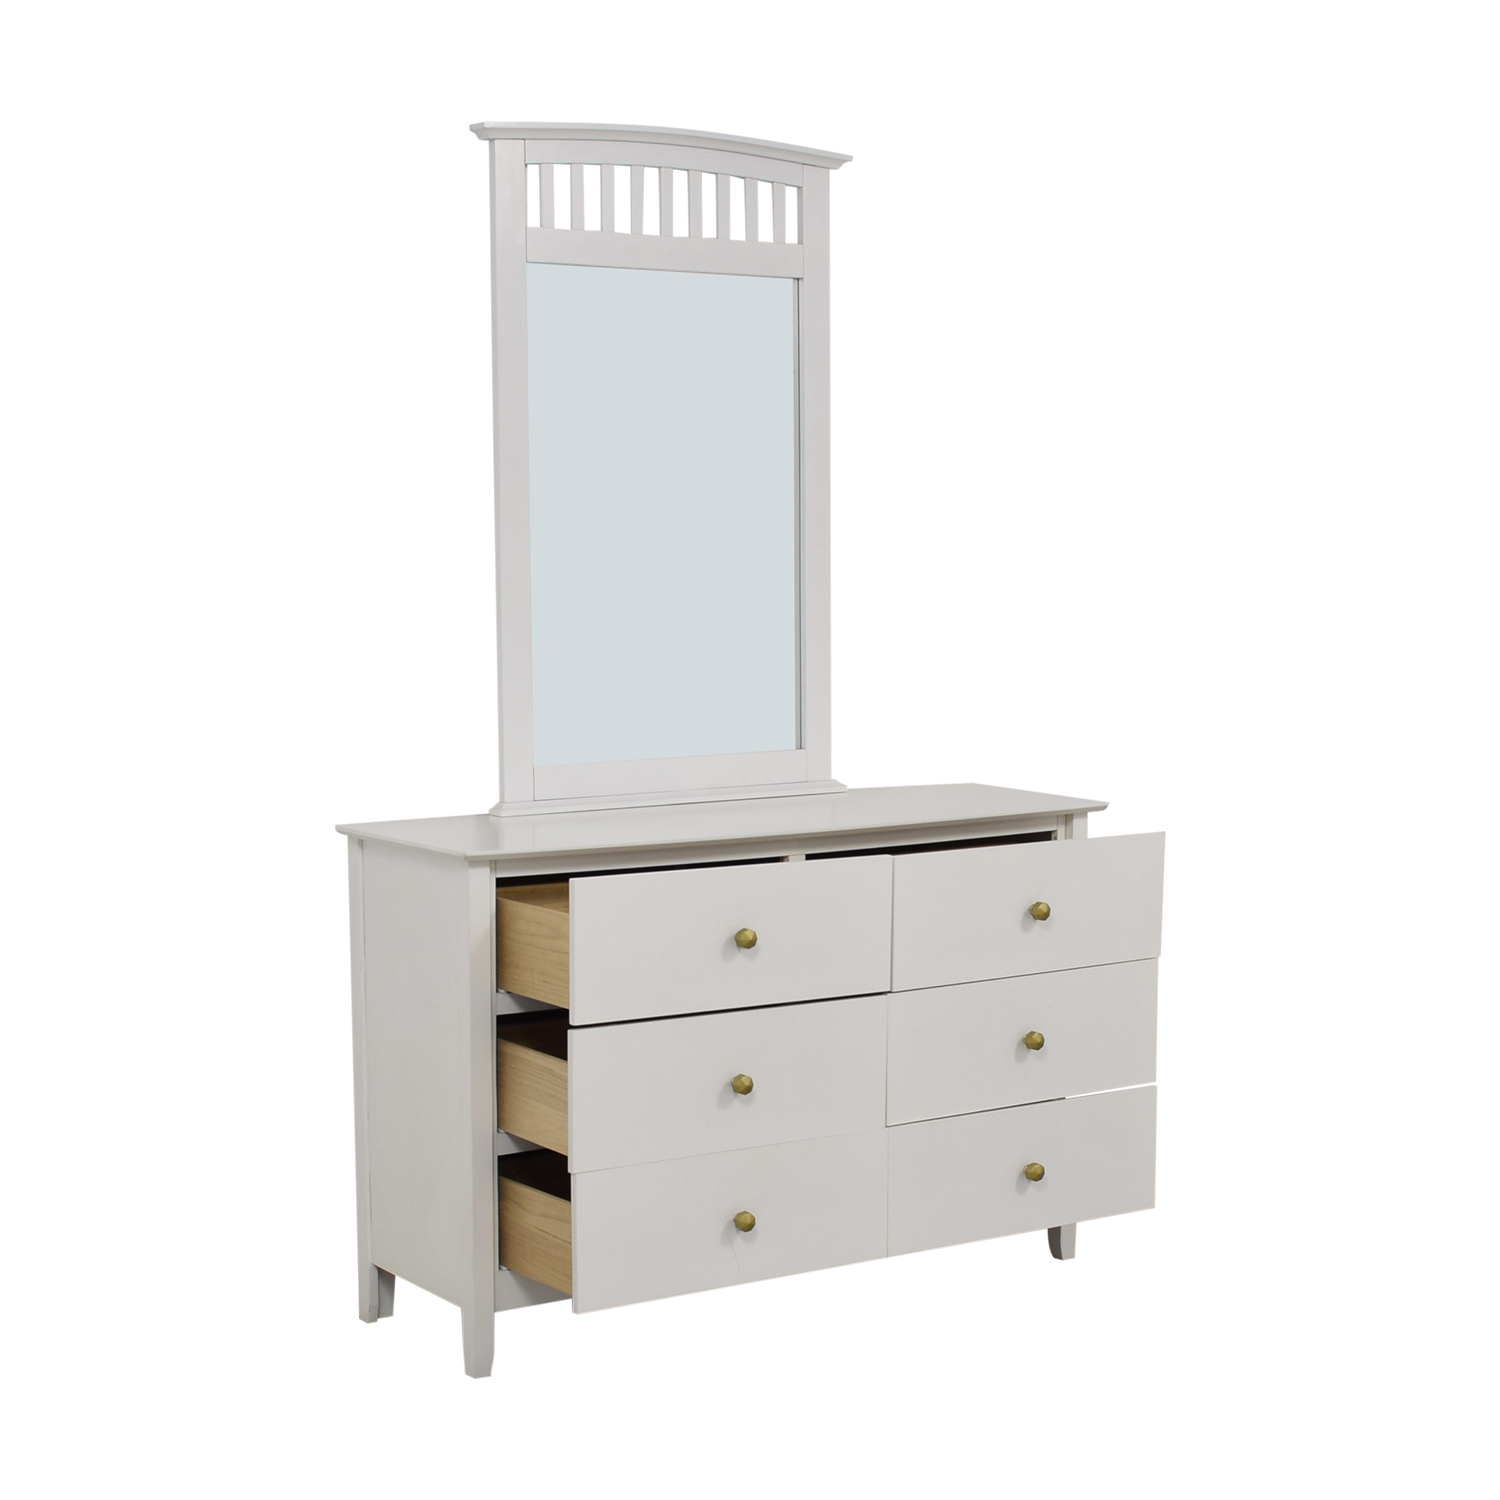 Bob's Discount Furniture Bob's Discount Furniture White Six-Drawer Dresser with Mirror Storage